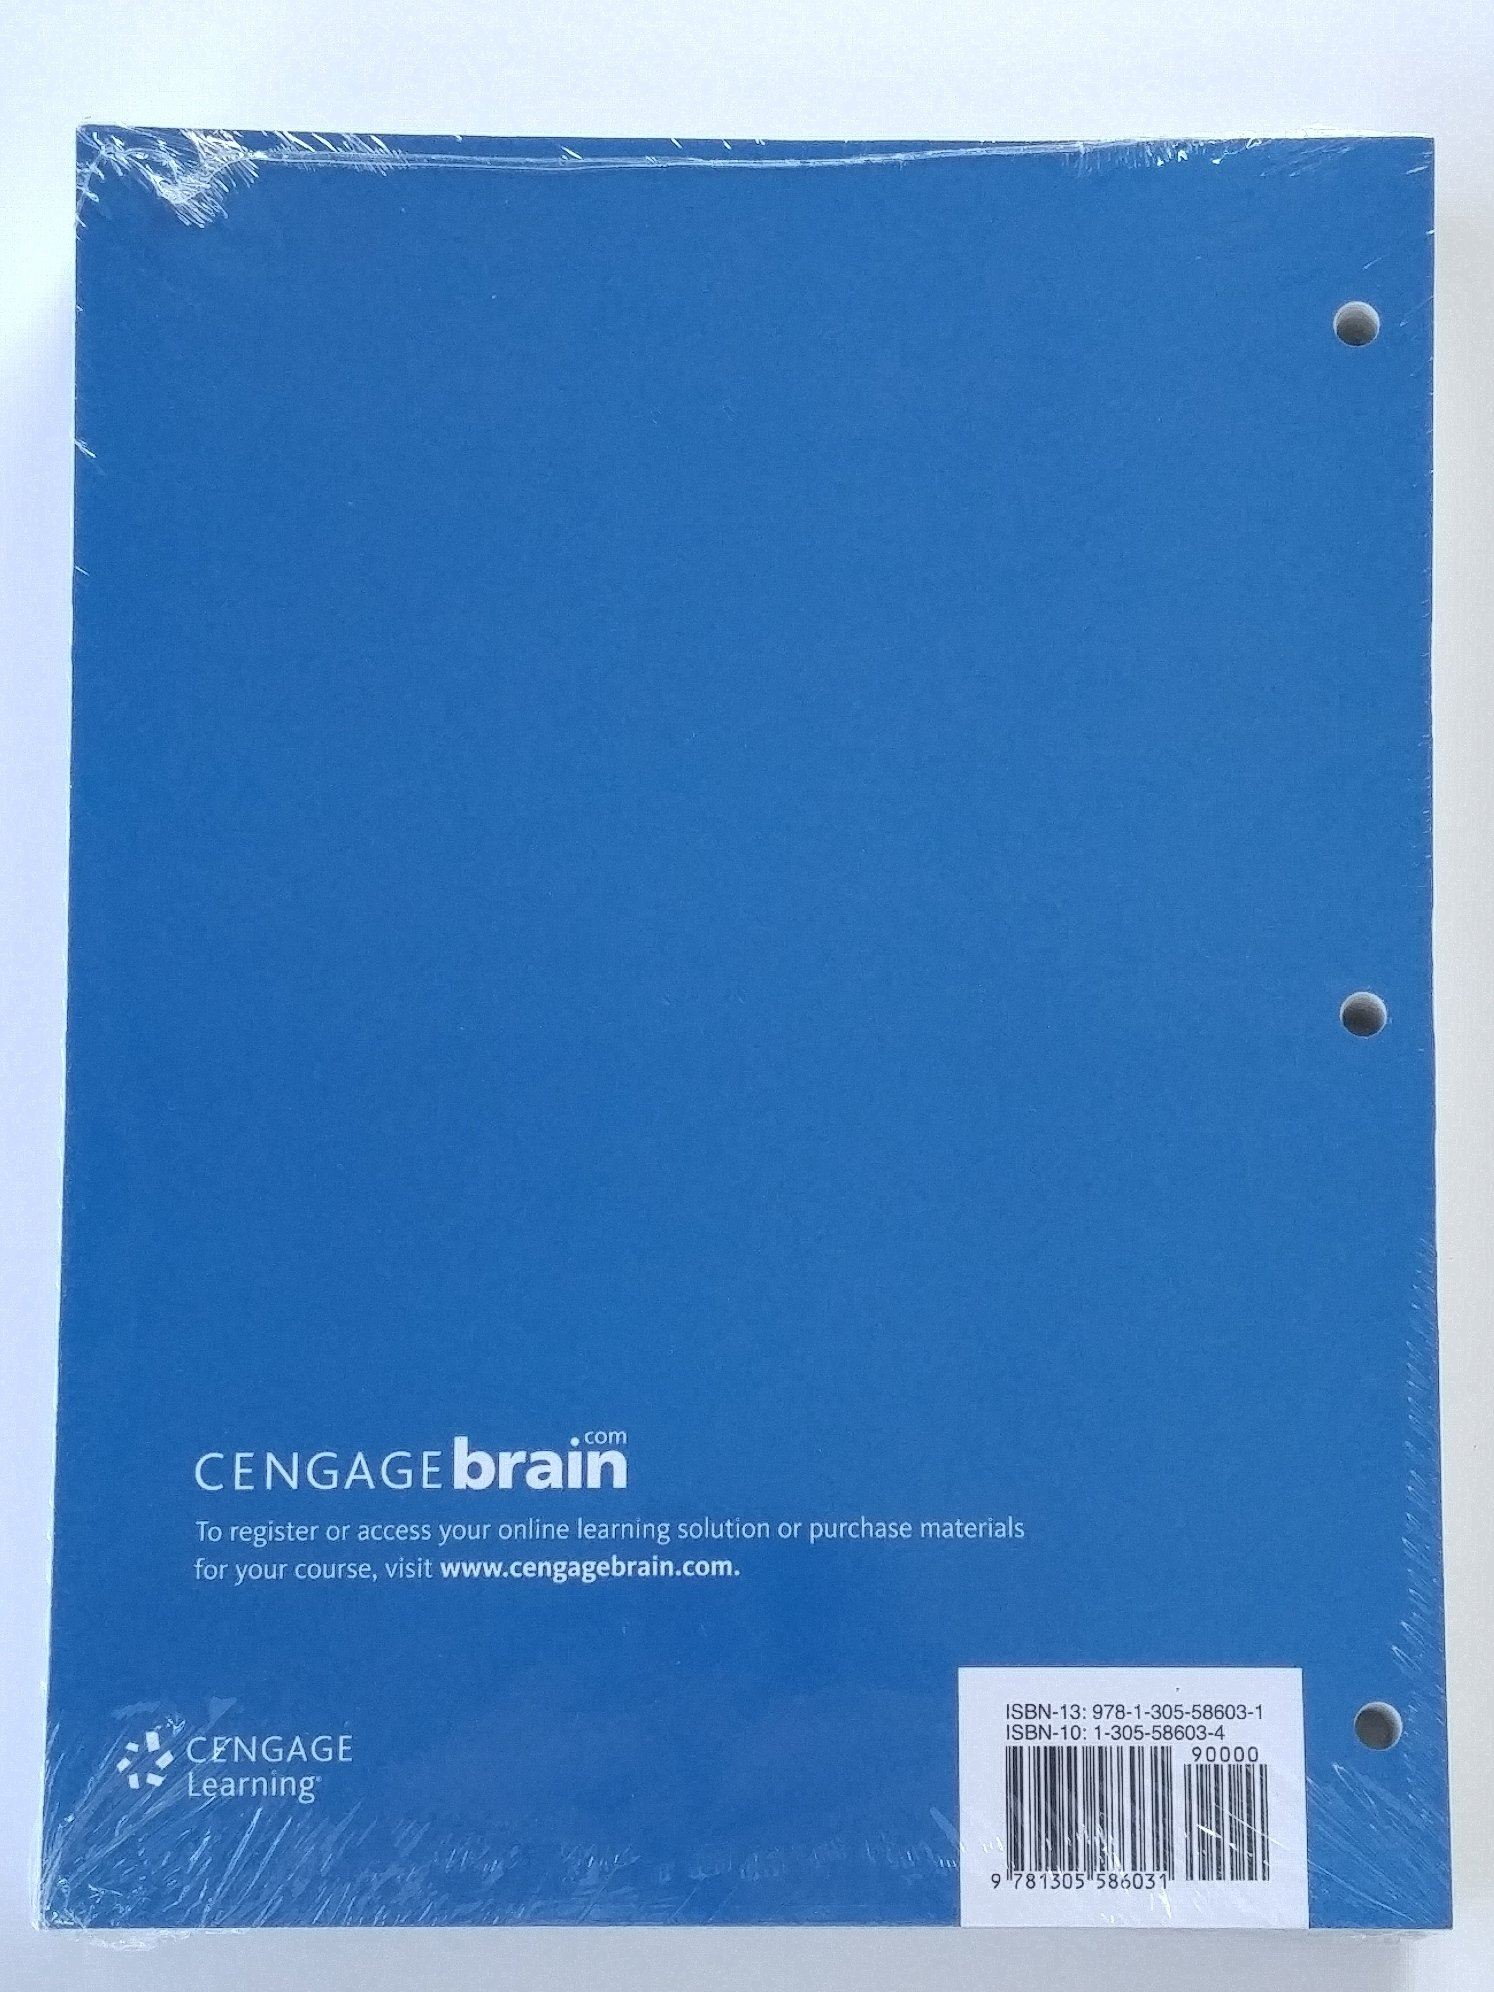 How to purchase an original phd dissertation on the cengage brain cengagebrain aplia coupon code cengagebrain coupon code fandeluxe Images